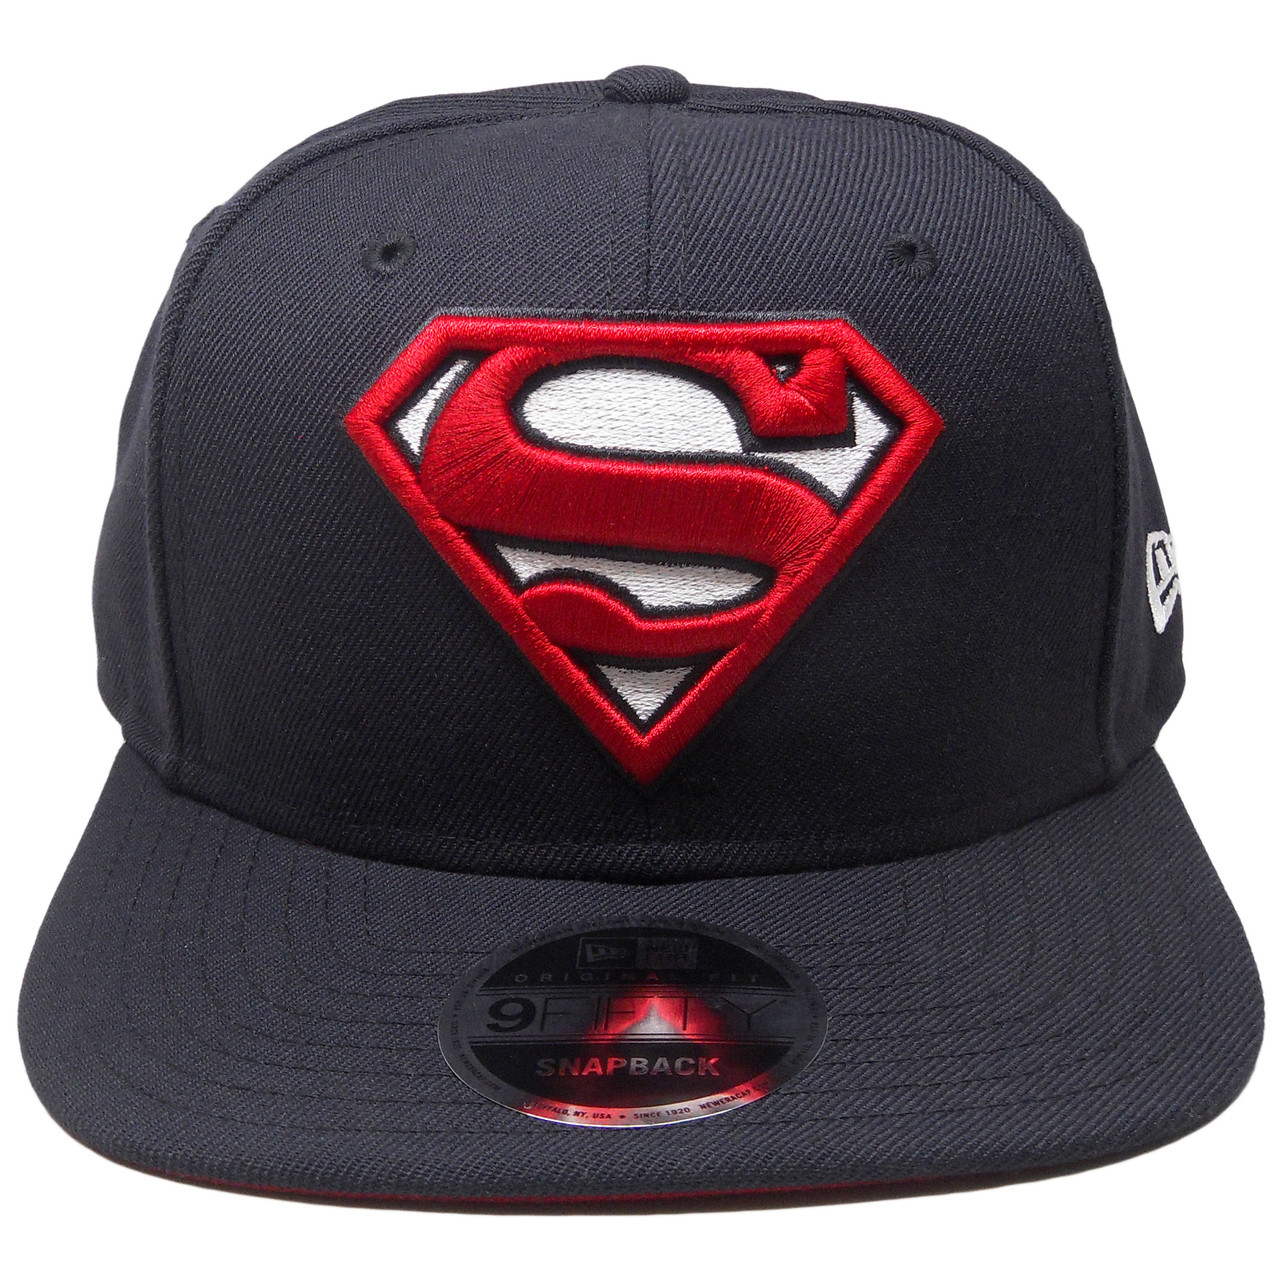 New Era Superman Black White Snapback Cap 9fifty Exclusive Limited Edition